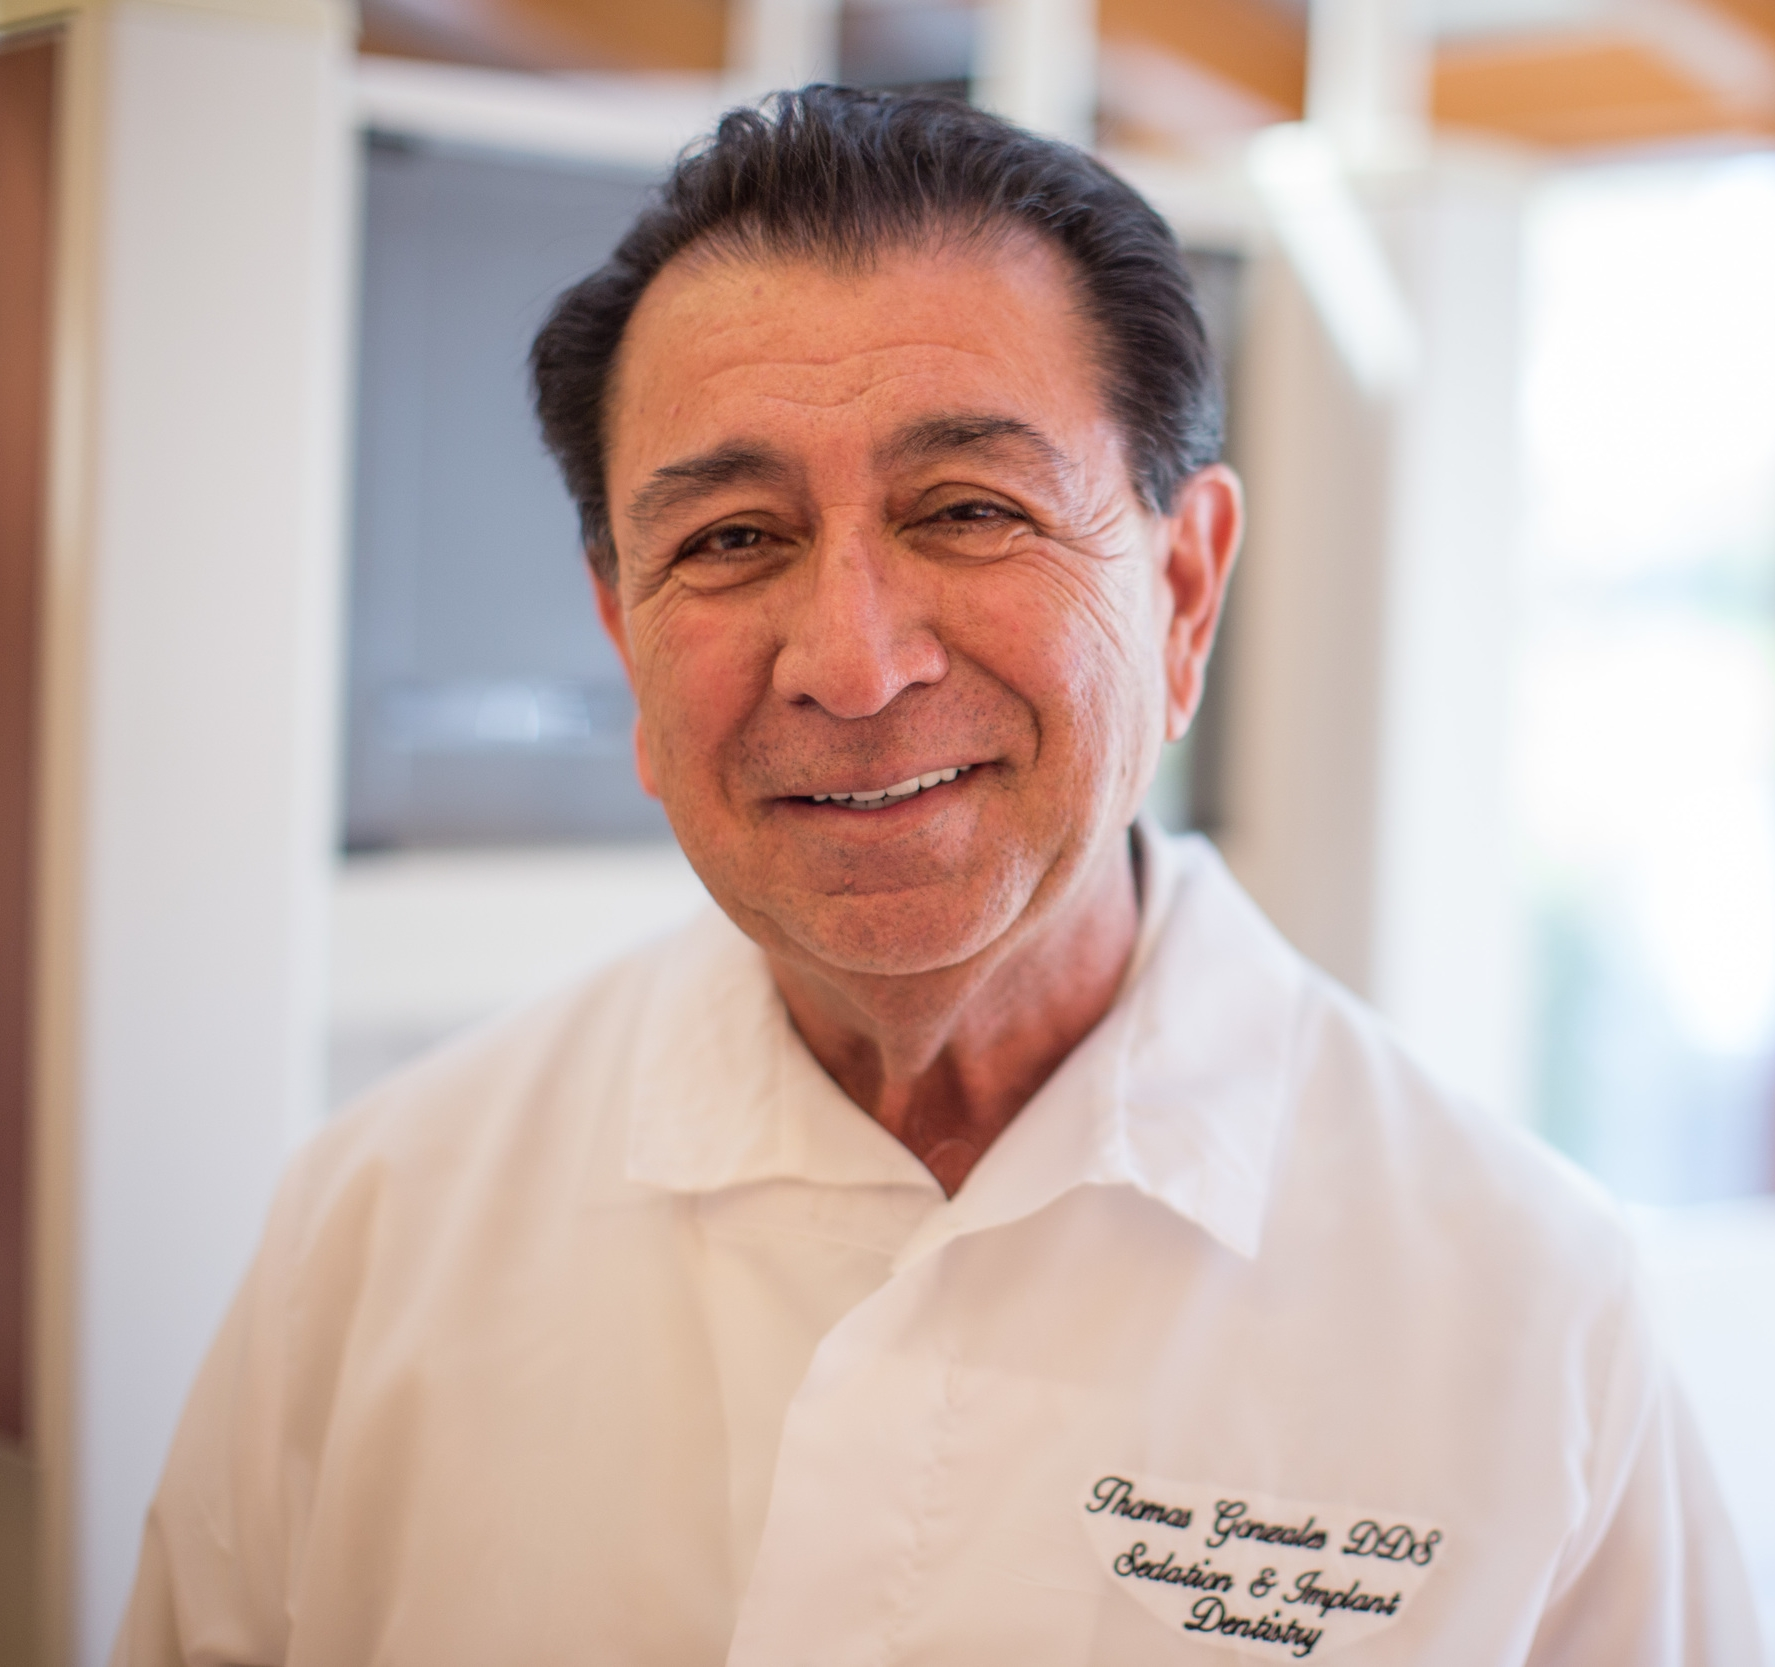 Dr. Thomas Gonzales is a dental implant specialist at Town Center Dentistry in Rancho Bernardo. We answer your dental implants and tooth replacement frequently asked questions.